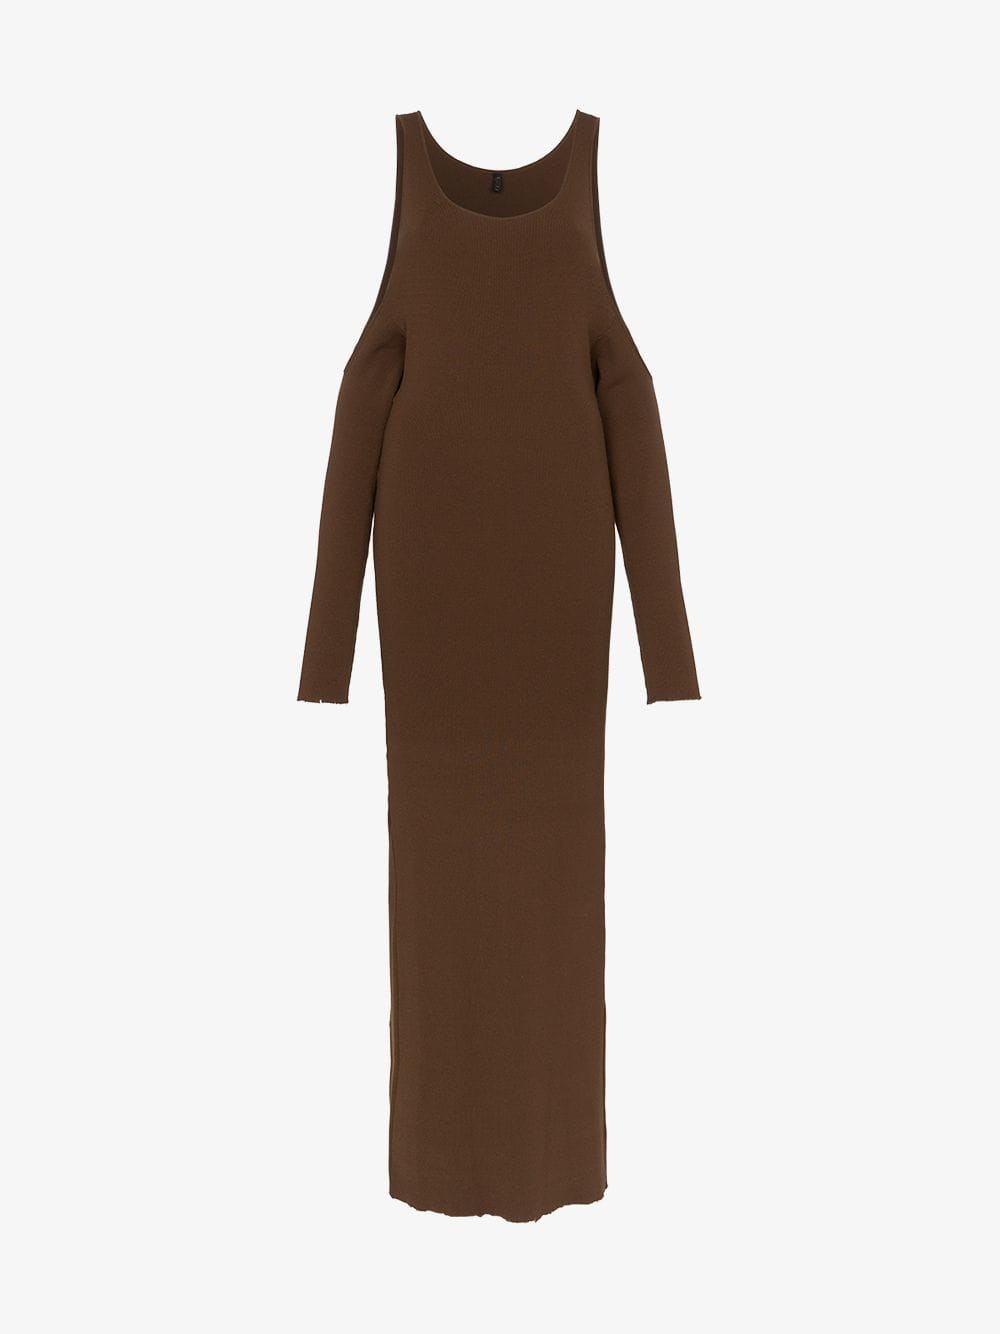 Unravel Project cold shoulder knitted maxi dress in brown